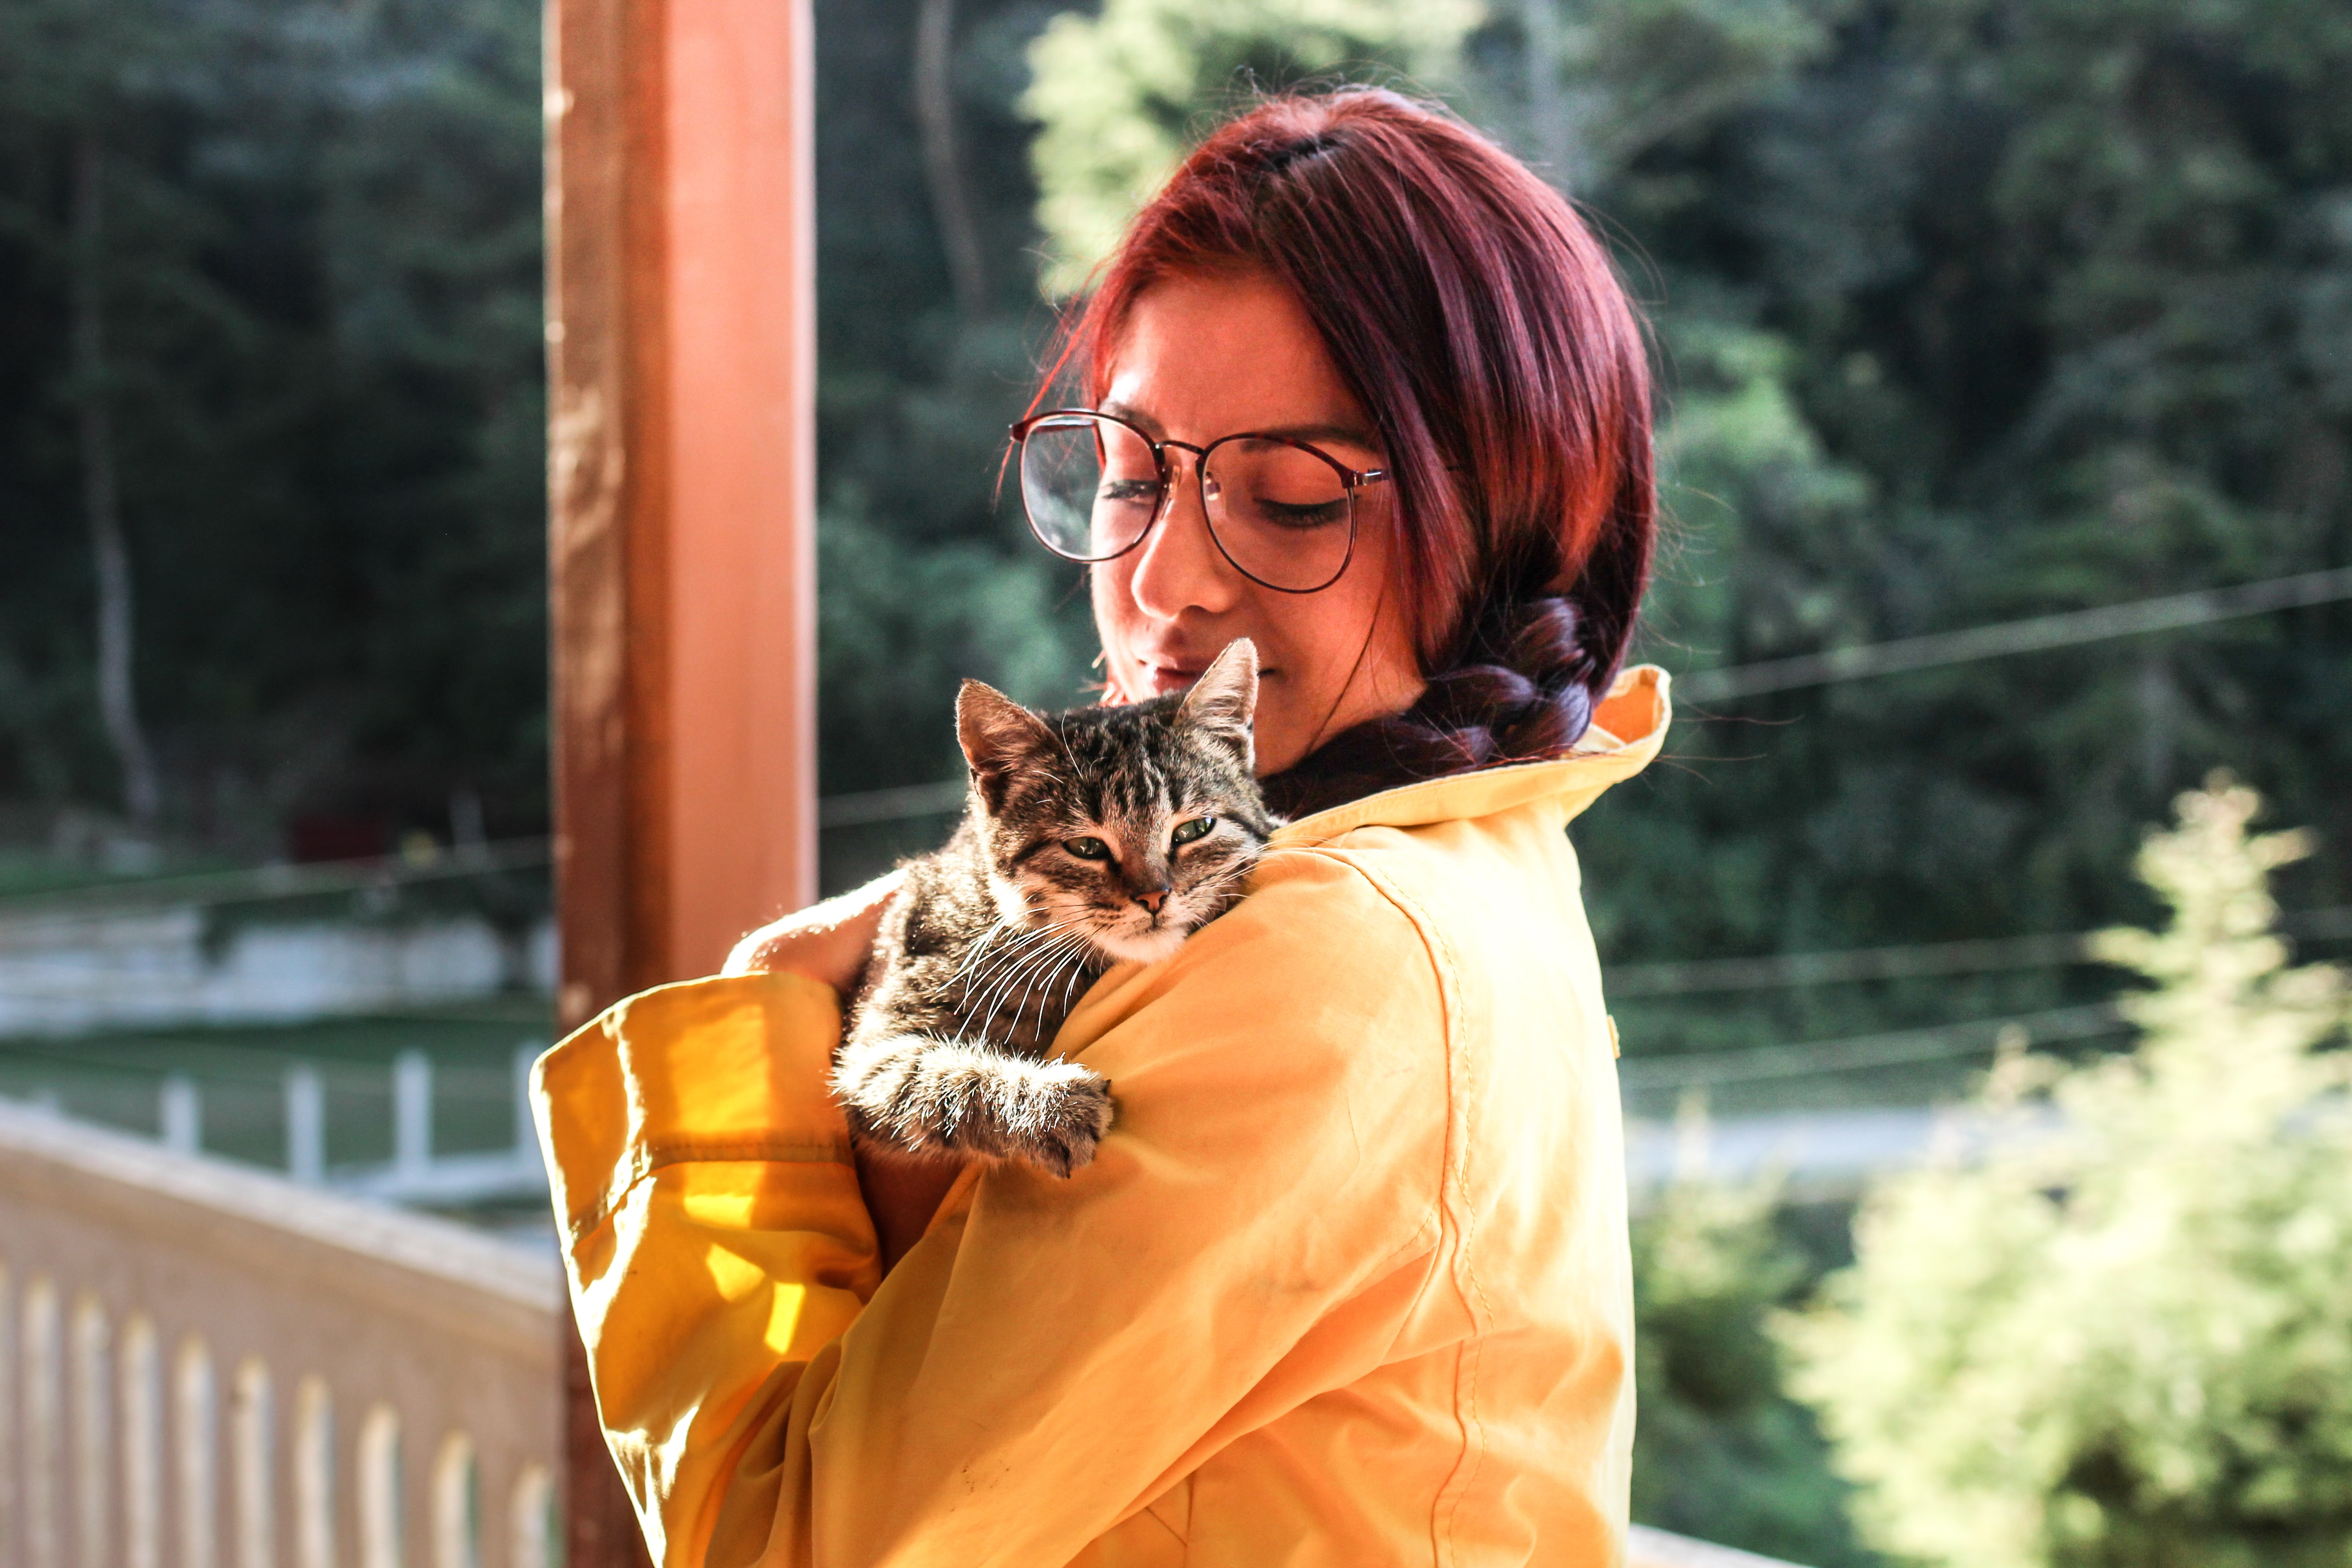 woman carrying cat while standing on porch